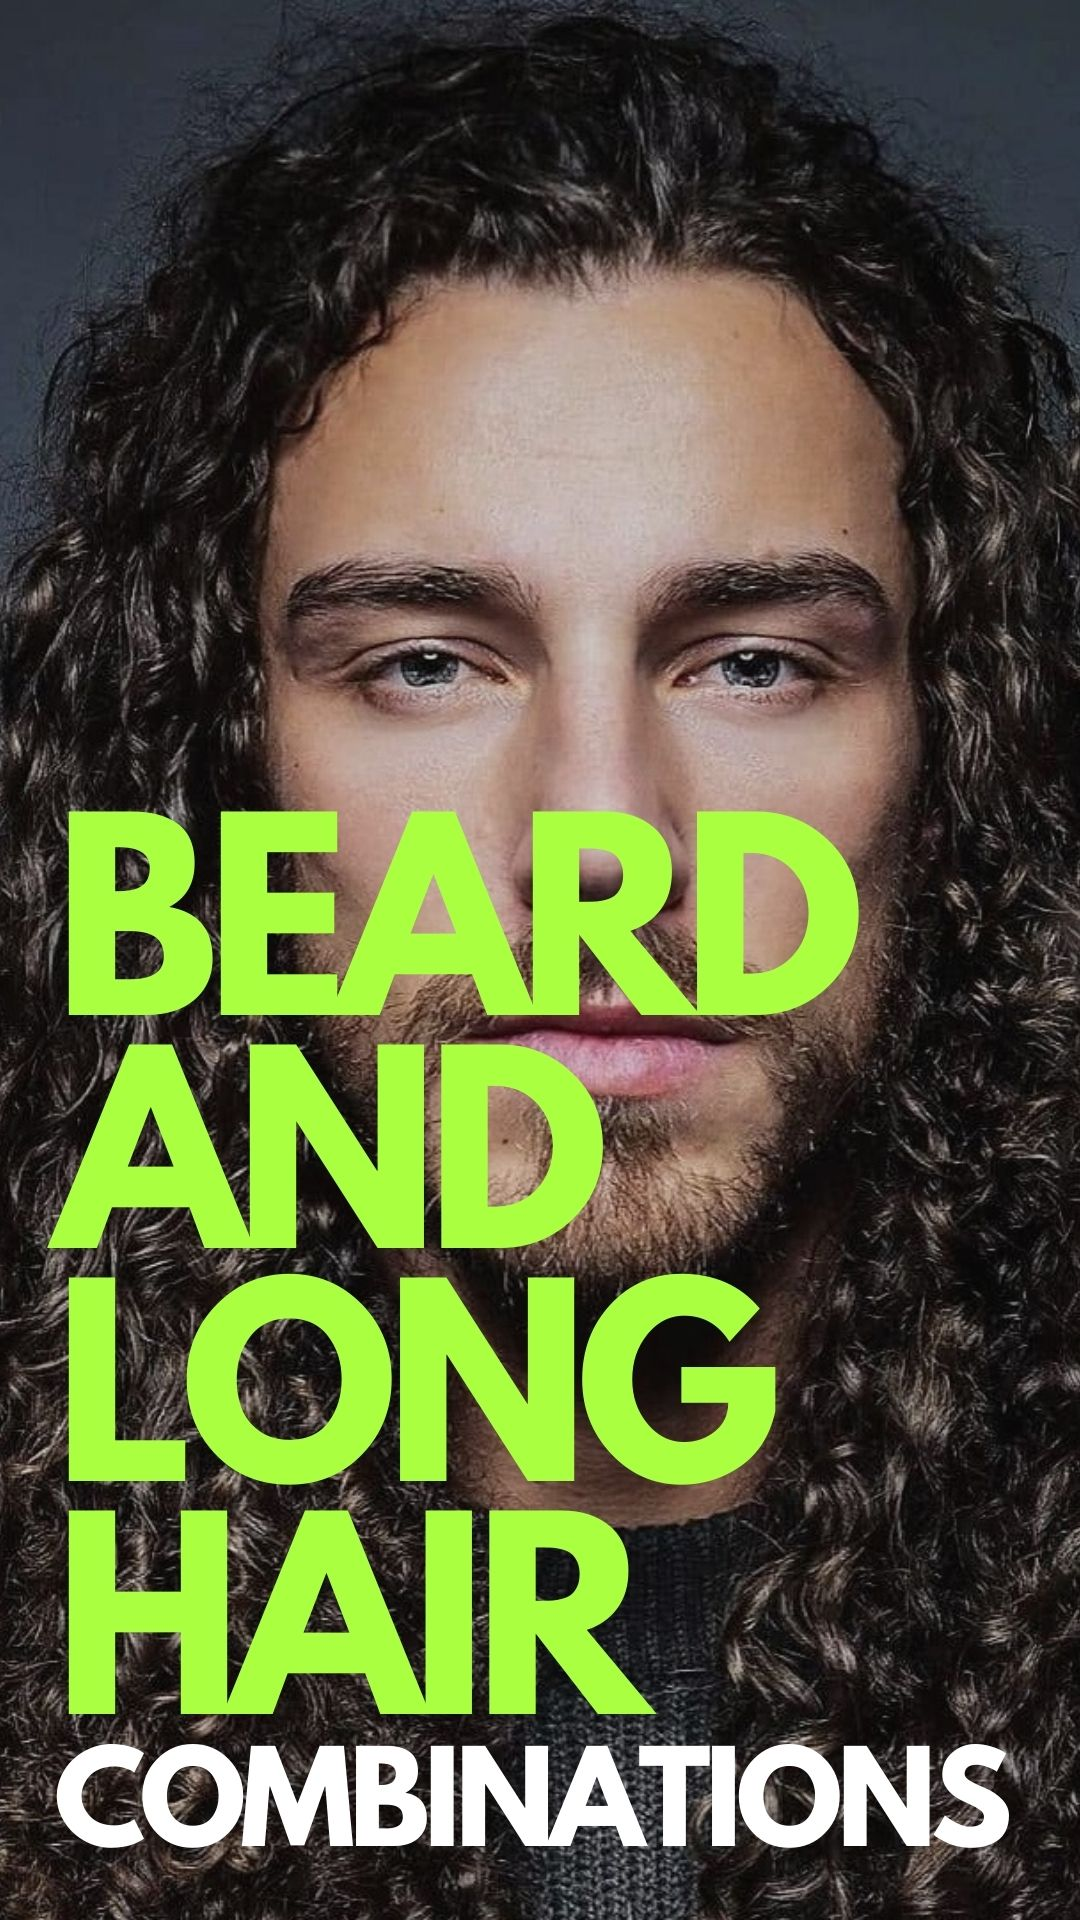 Beard and Long Hair Combination